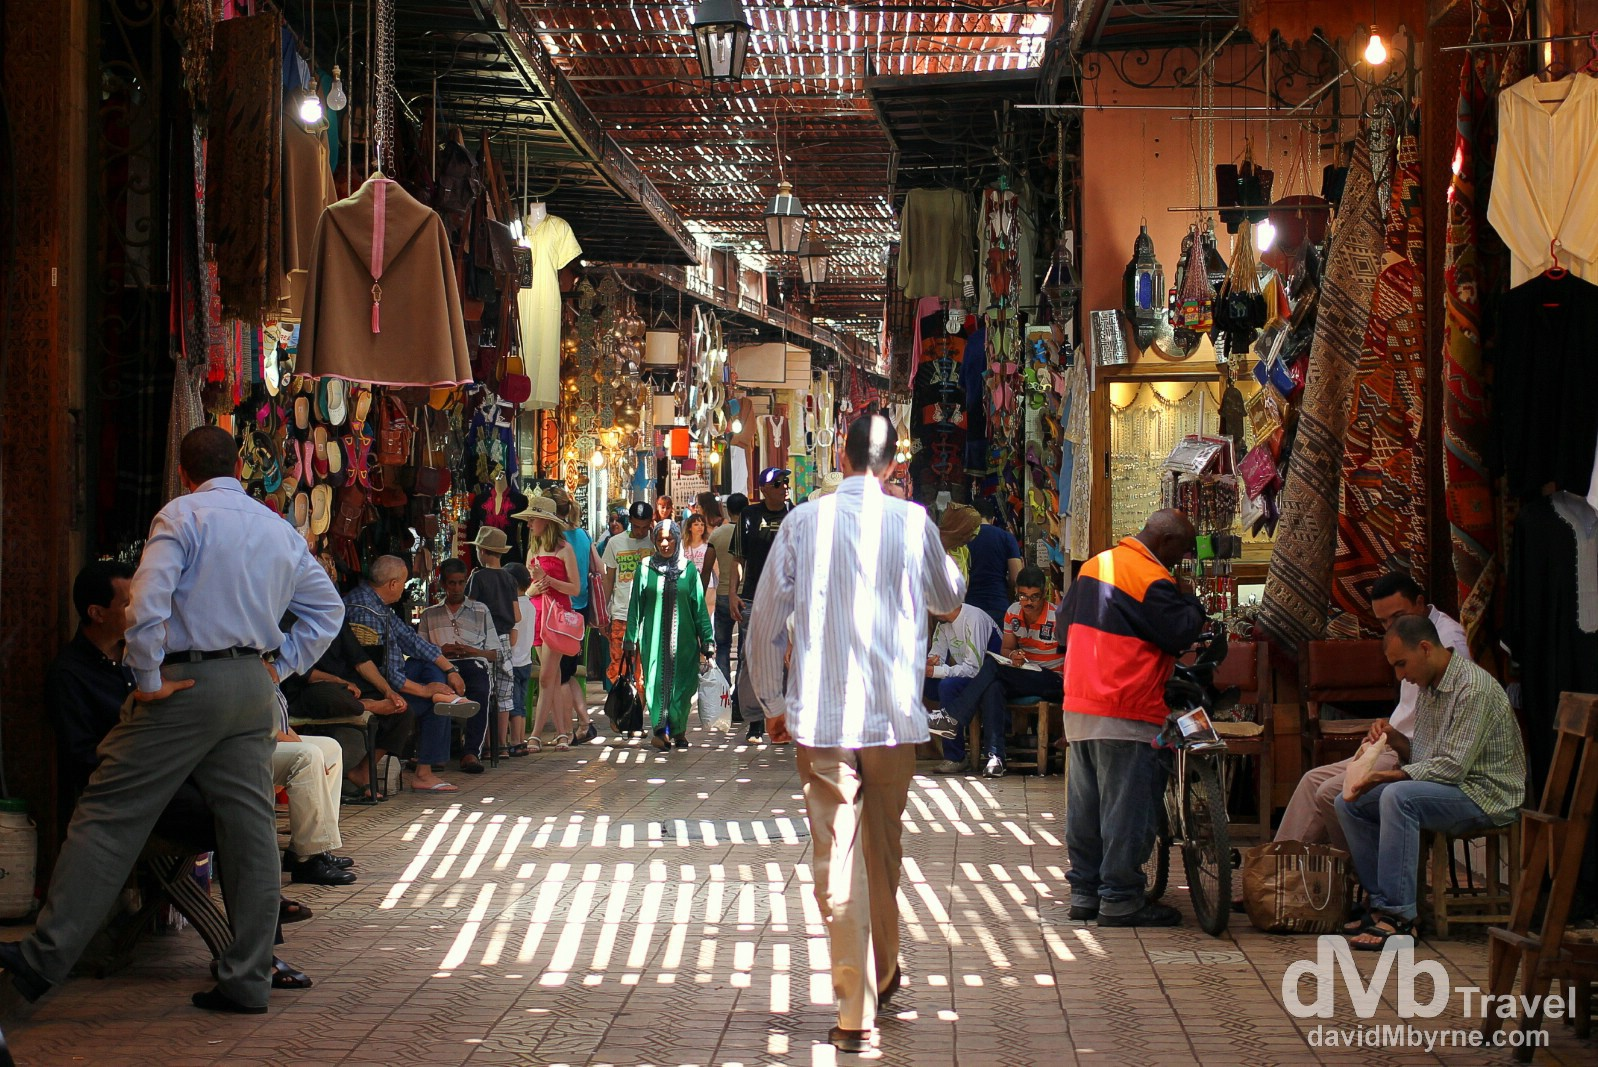 In one of the countless labyrinth souqs (covered markets) in Marrakesh, Morocco. May 8th, 2014.